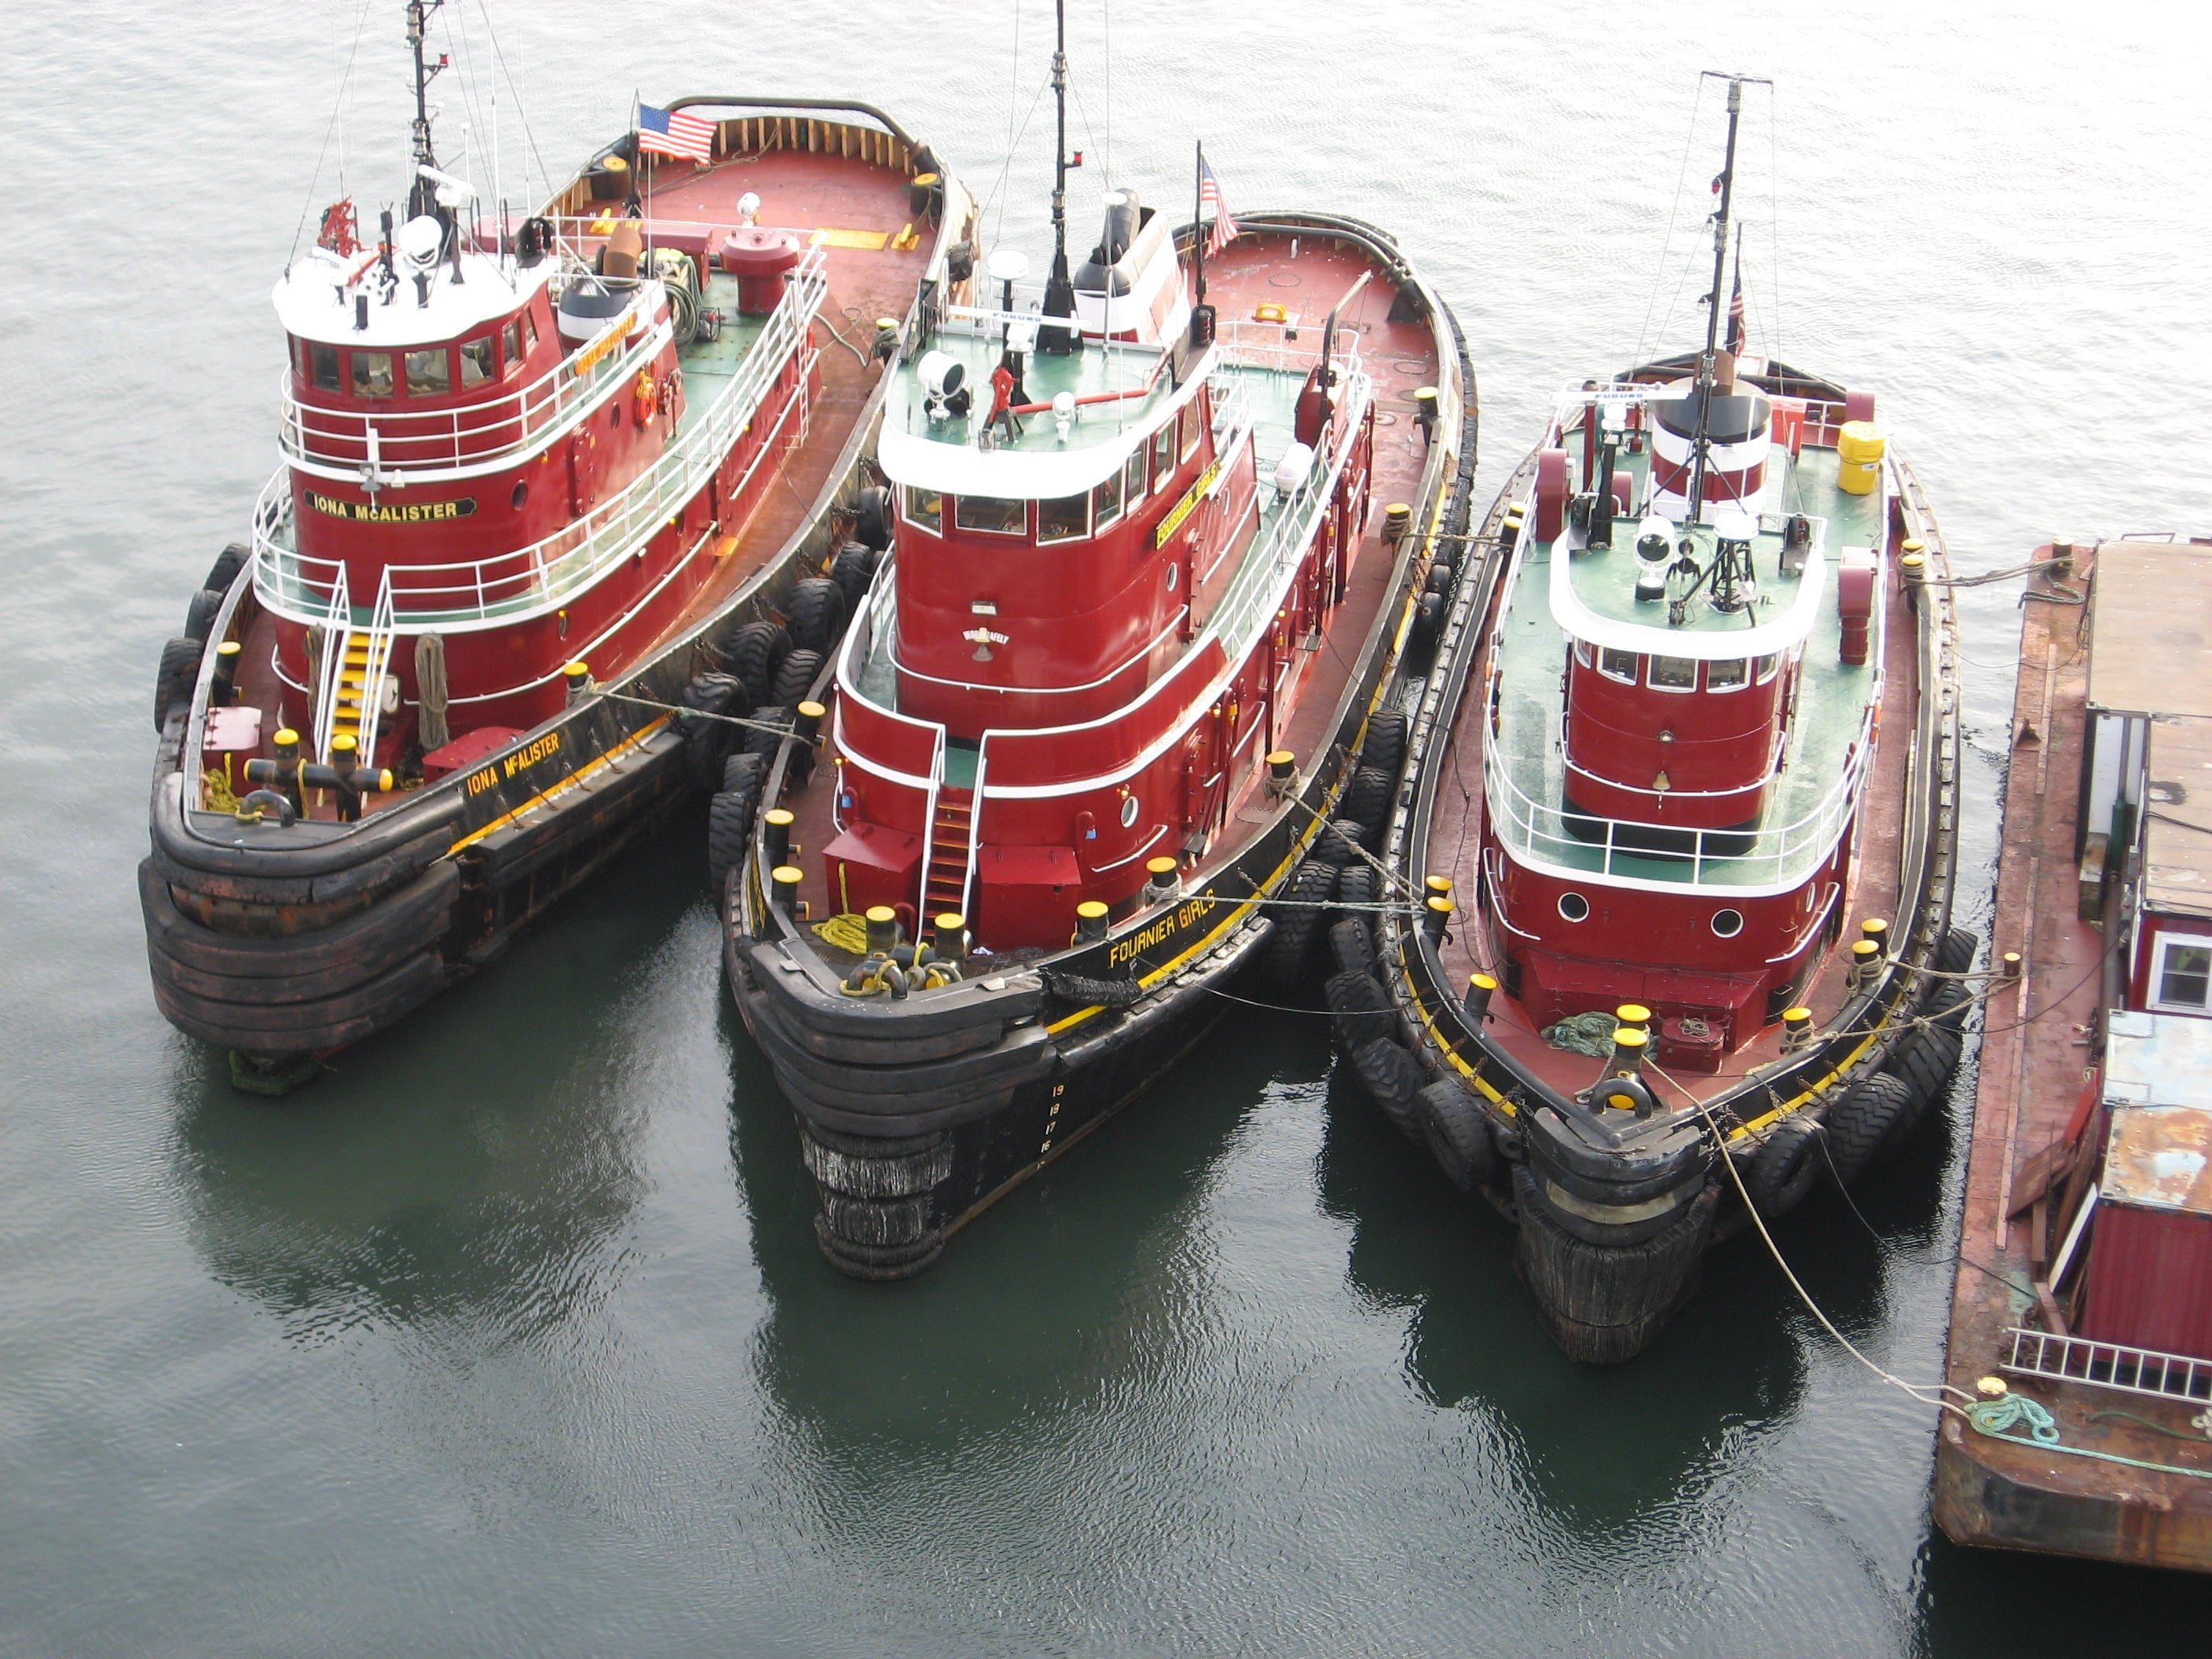 Tugs at Prince Edward Island by Larry Juday